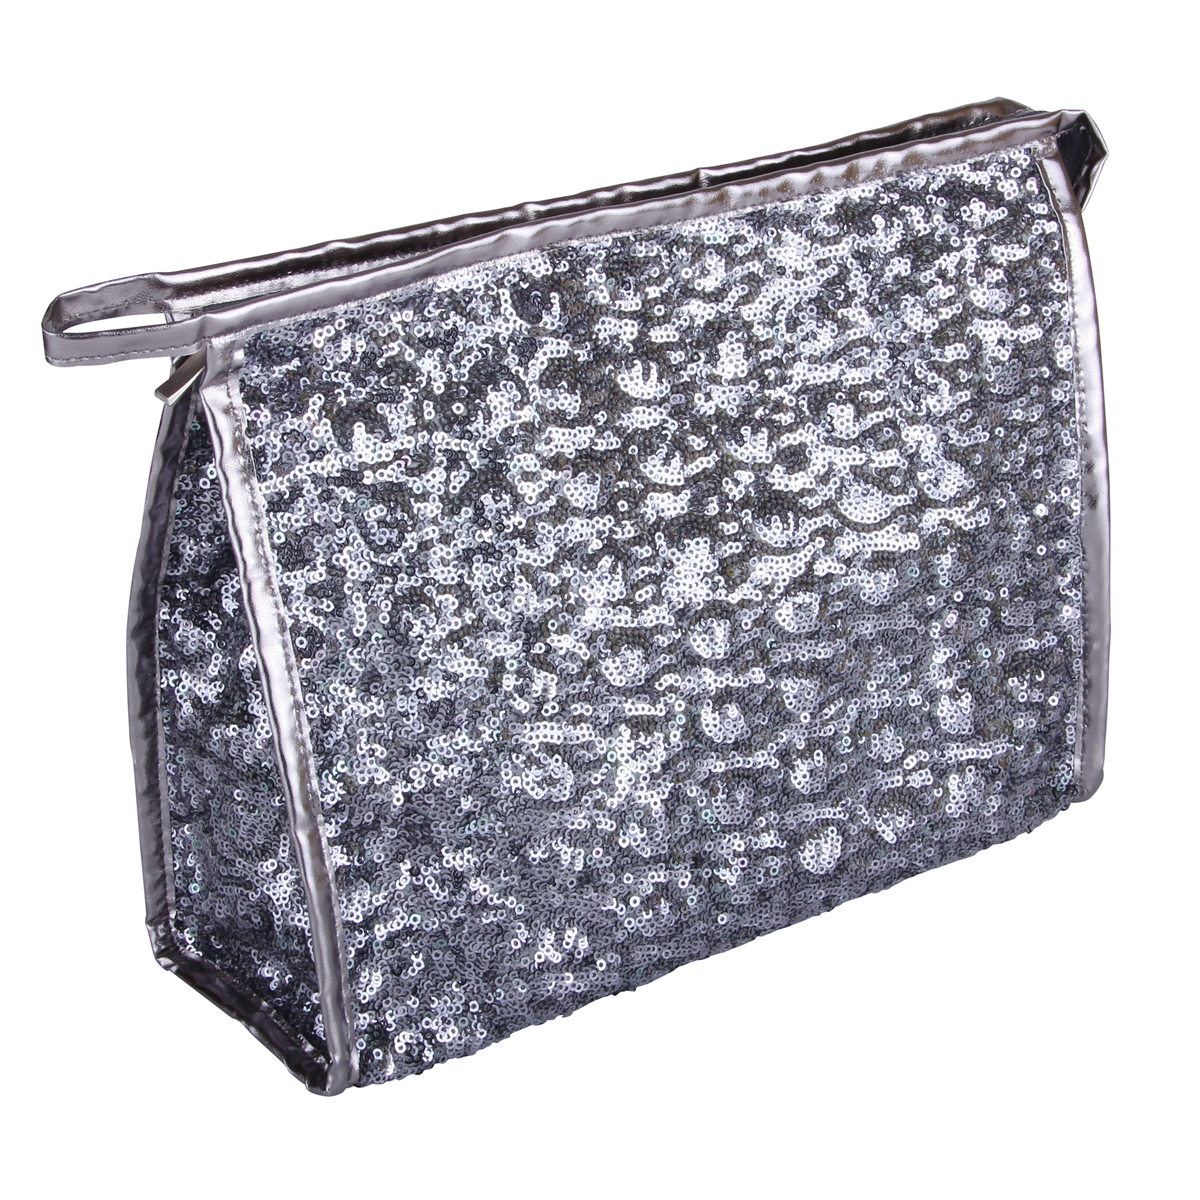 B2401 - Silver Shimmer & Shine Collection Cosmetic/Toiletry Bags - B2401